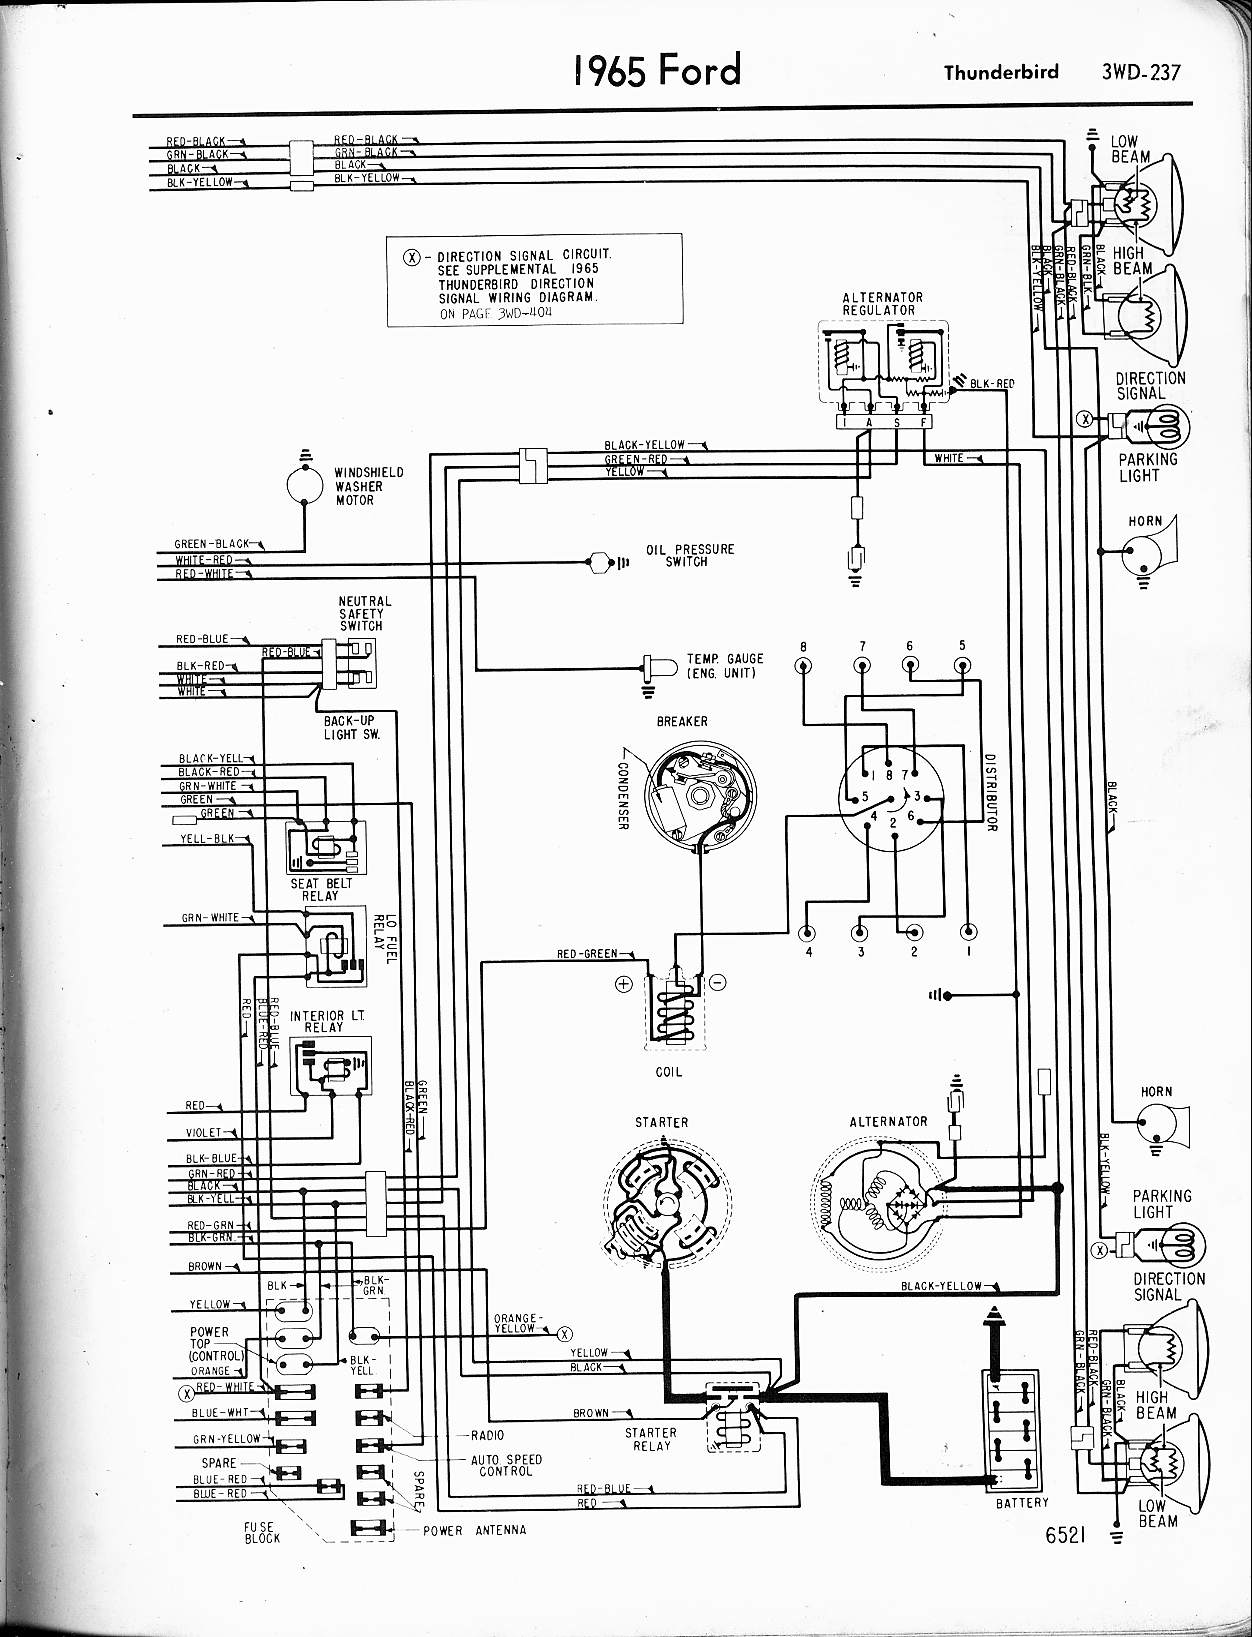 hight resolution of 1964 ford thunderbird fuse box diagram wiring diagrams scematic 1997 ford thunderbird radio wiring diagram 1997 thunderbird wiring diagram